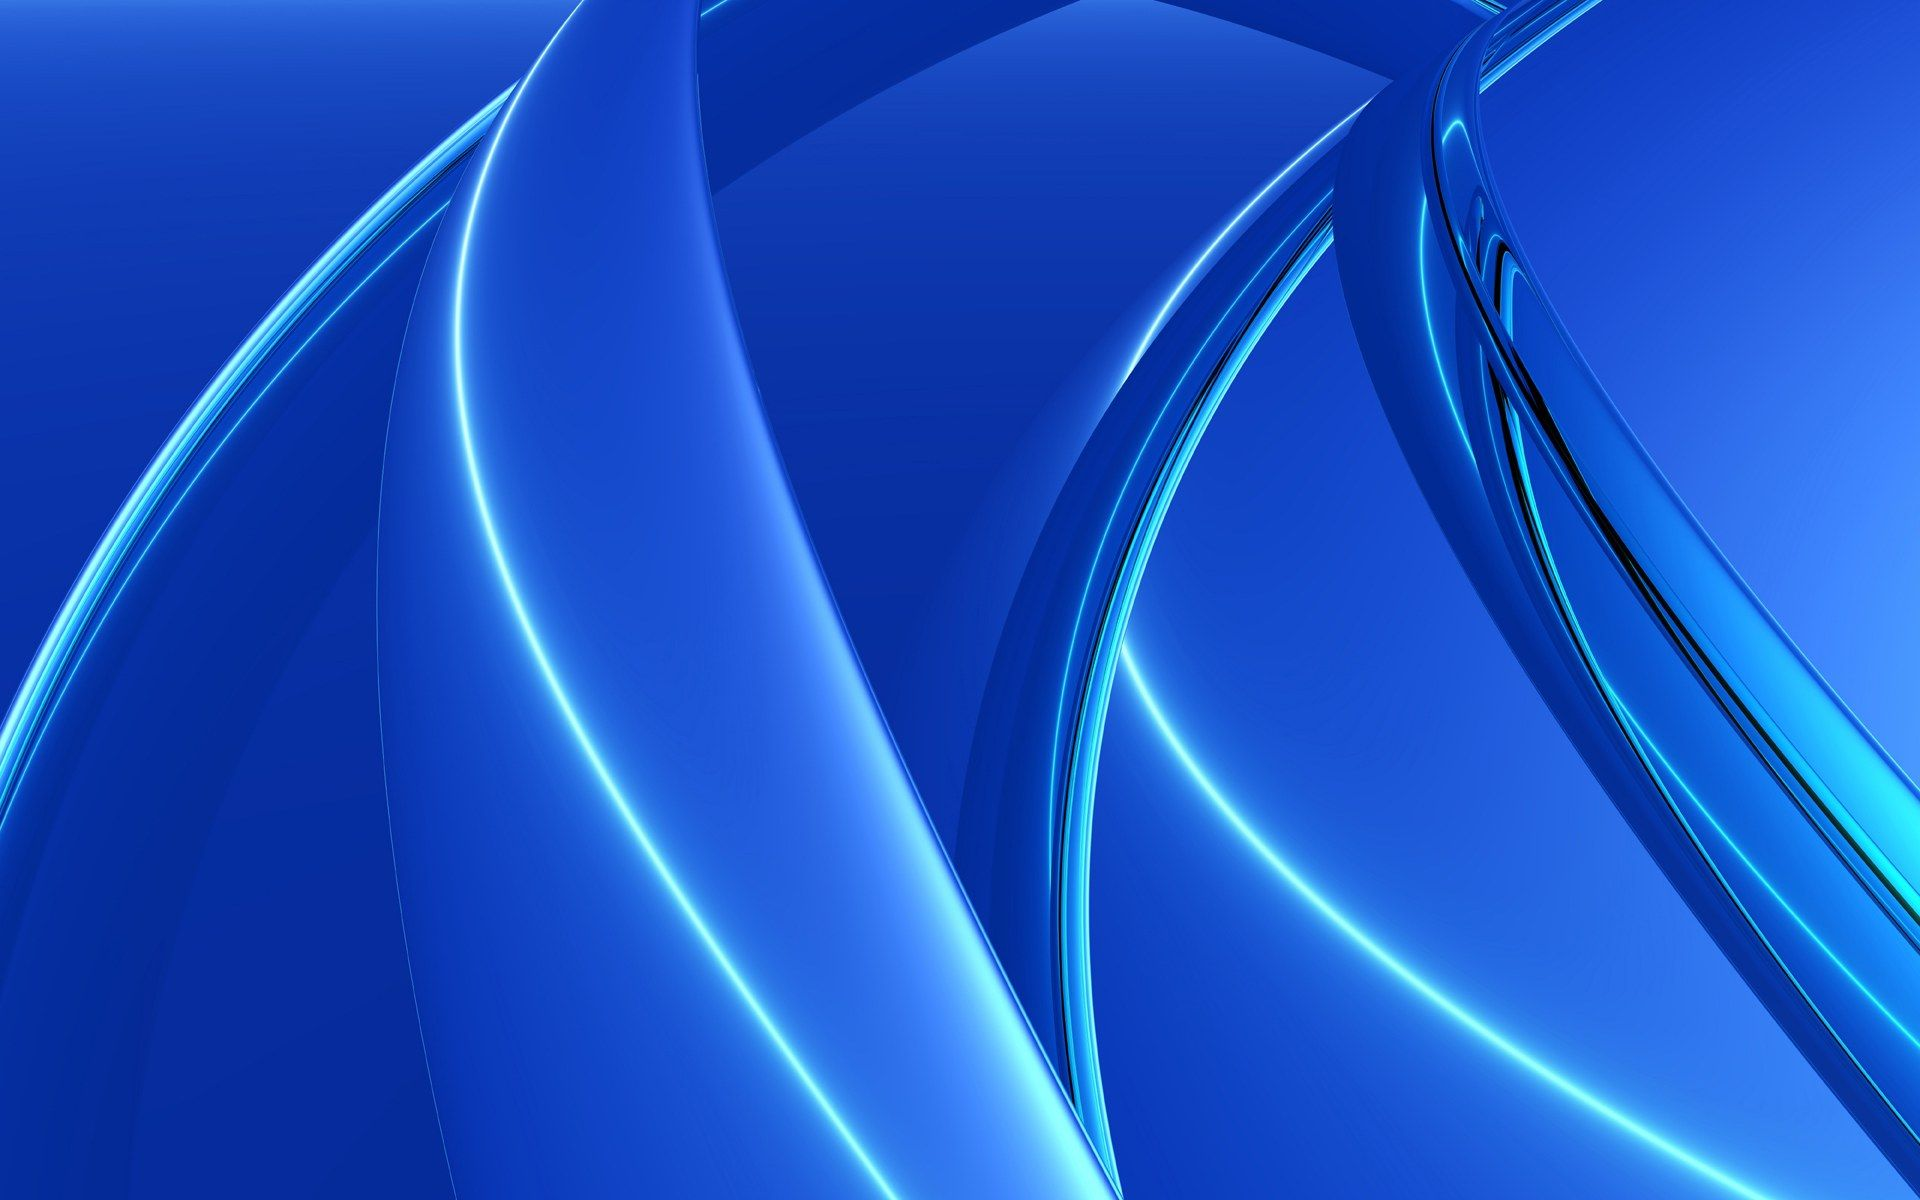 Abstract Blue Backgrounds 17 Wallpapers Hd Wallpapers 71466 Blue Background Wallpapers Blue Wallpaper Iphone Blue Background Images